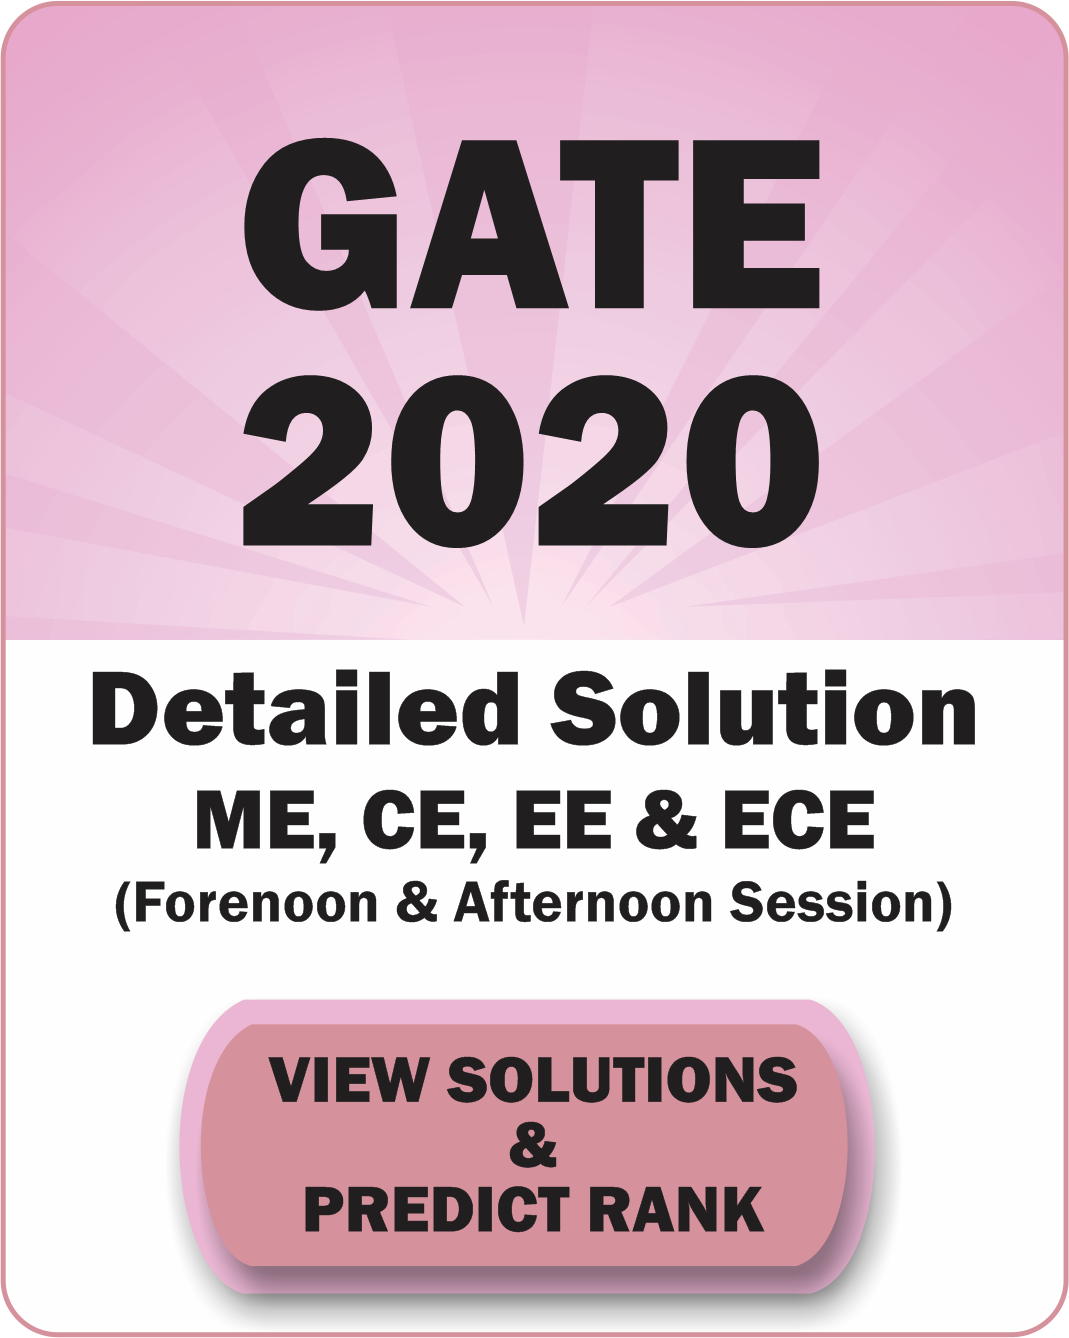 GATE 2020 Detailed solution